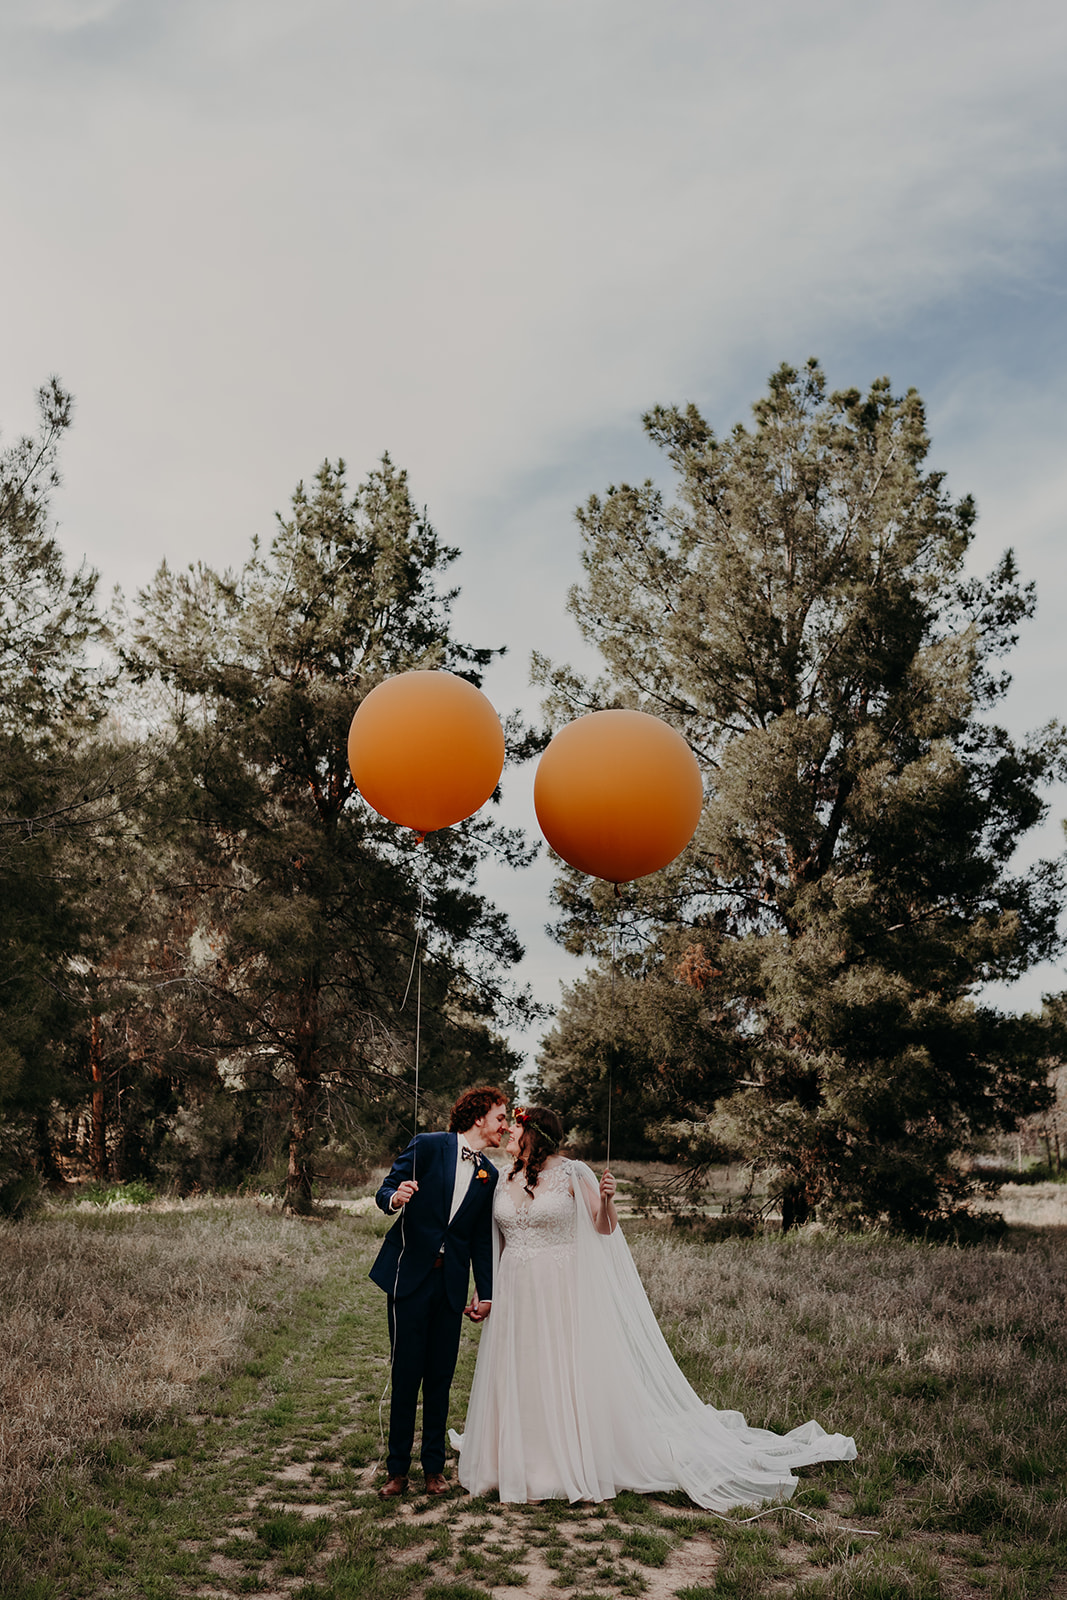 Disney Themed Wedding - Arizona florist Phoenix scottsdale Mesa chandler Sedona Flagstaff Prescott - UP Inspired Couples Portraits